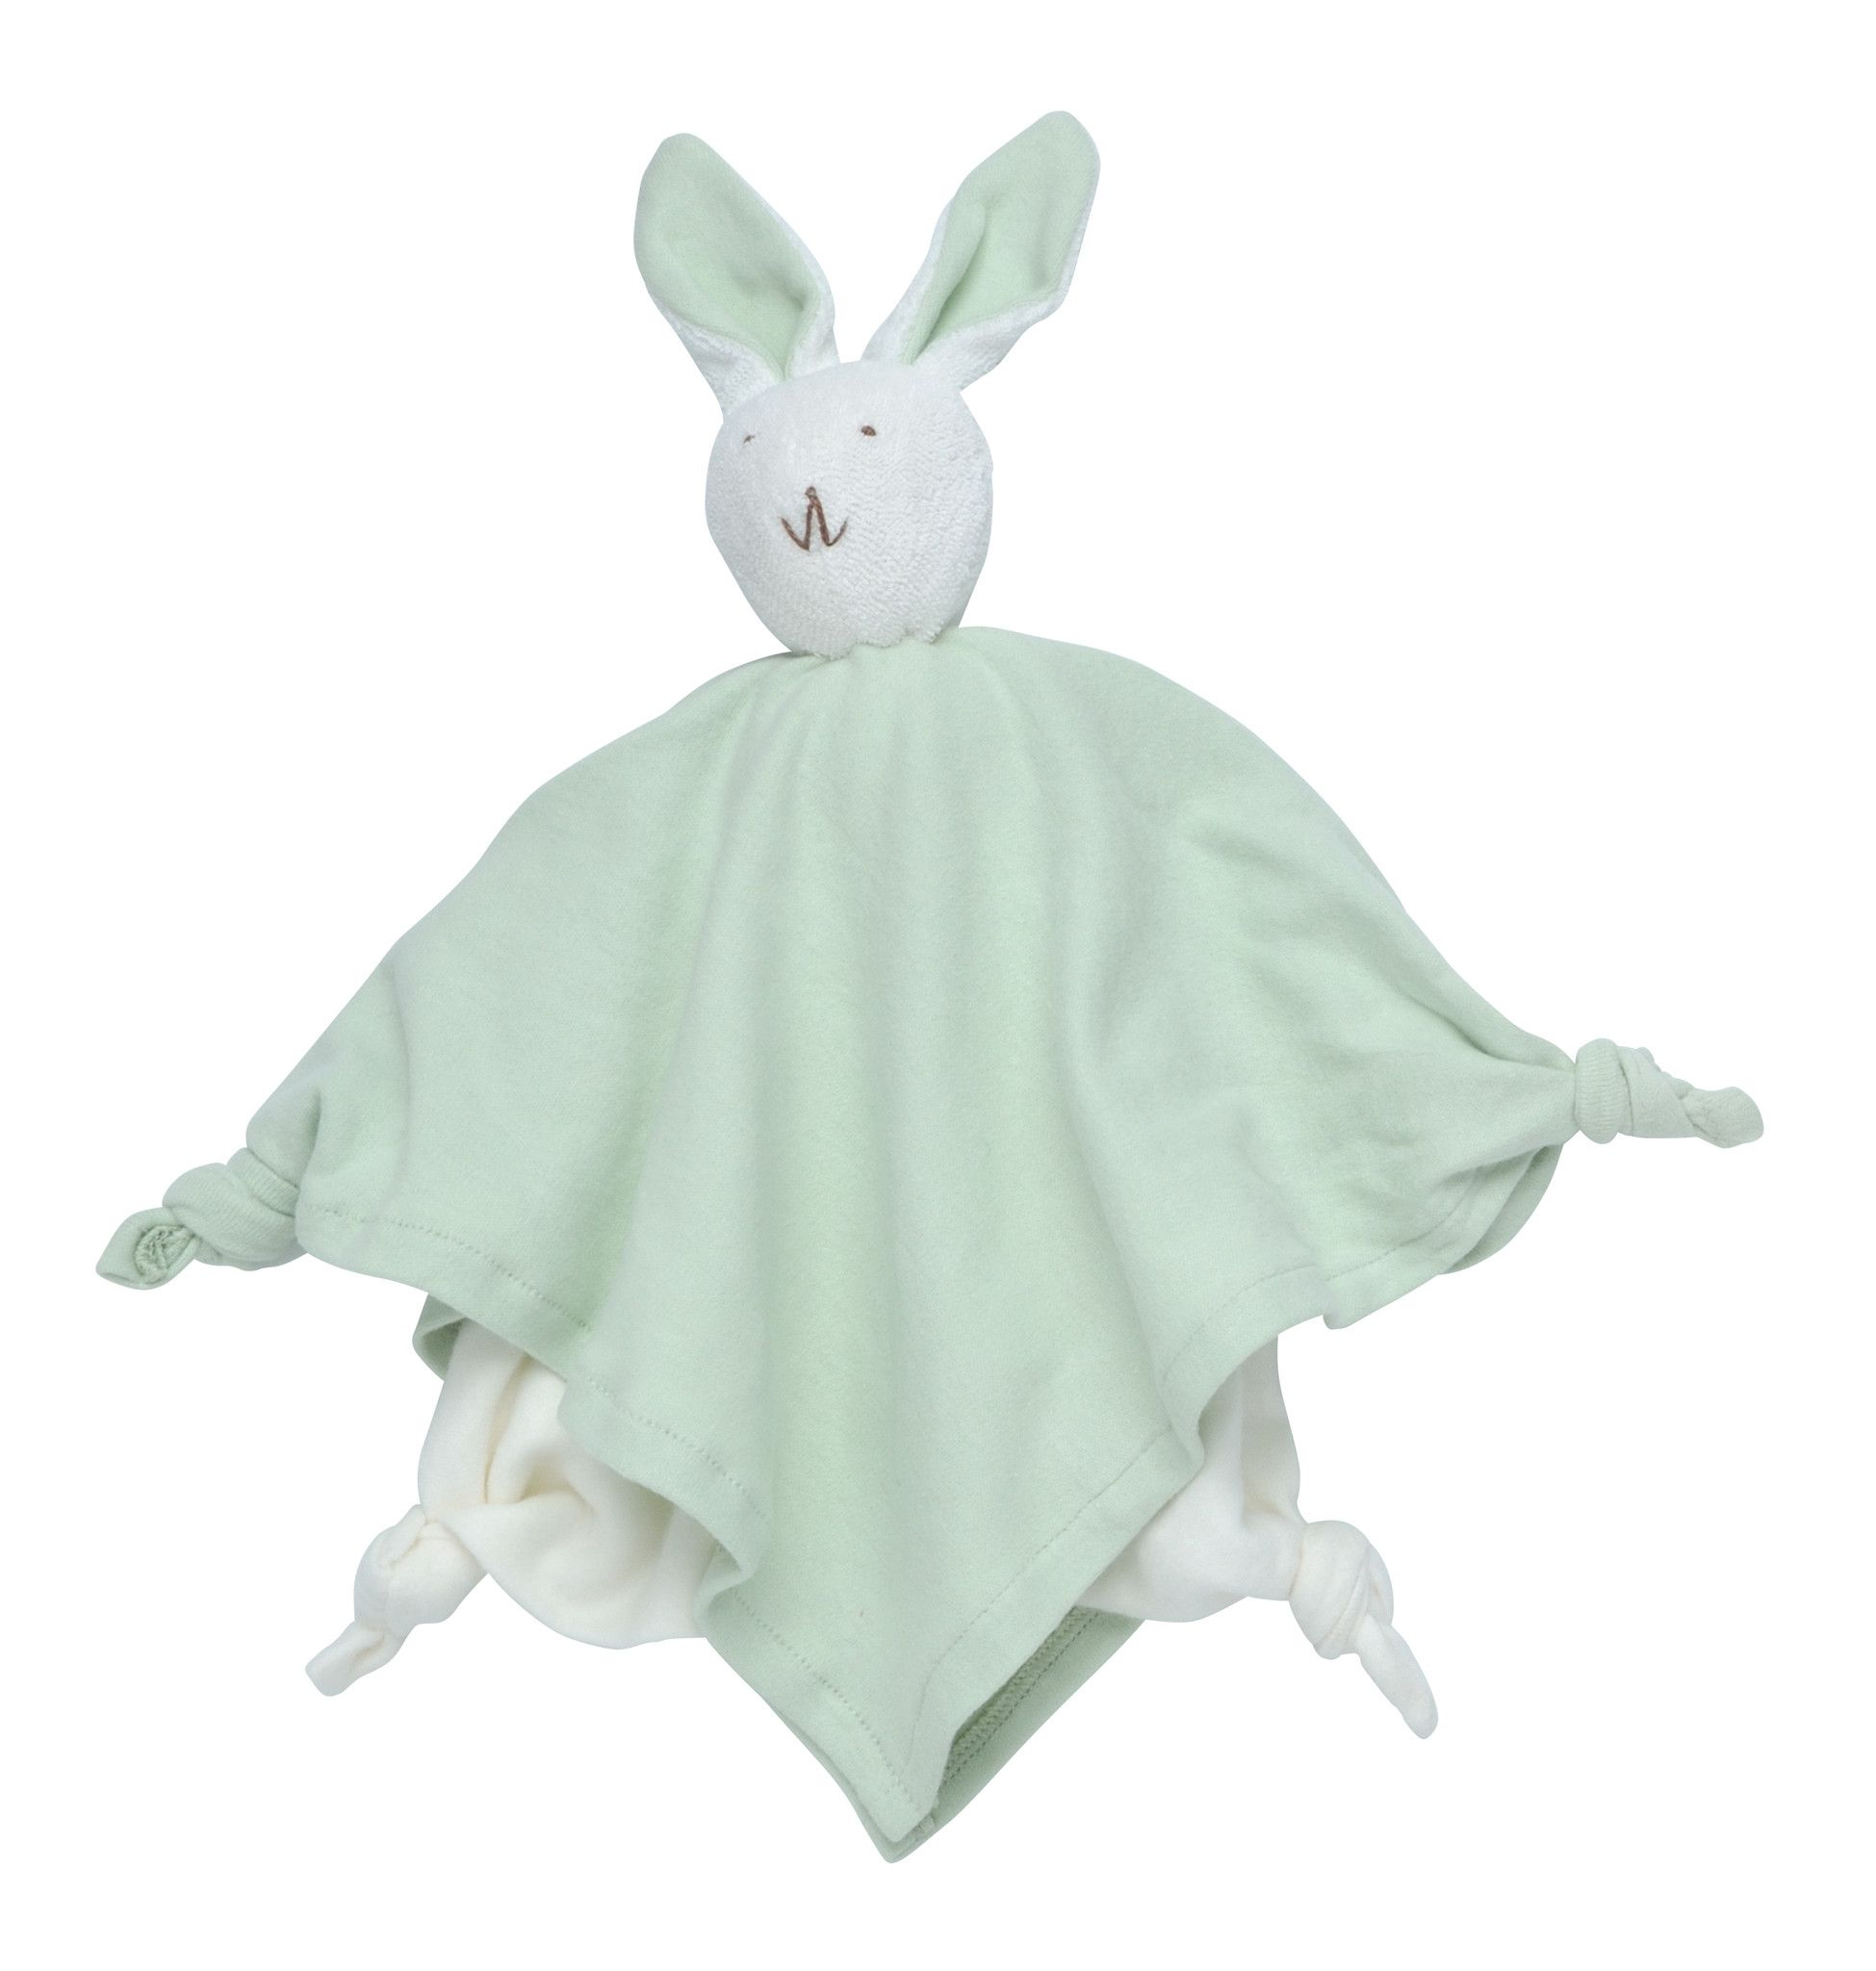 Plush Blanket Friend 100% Organic Cotton - Sage Bunny